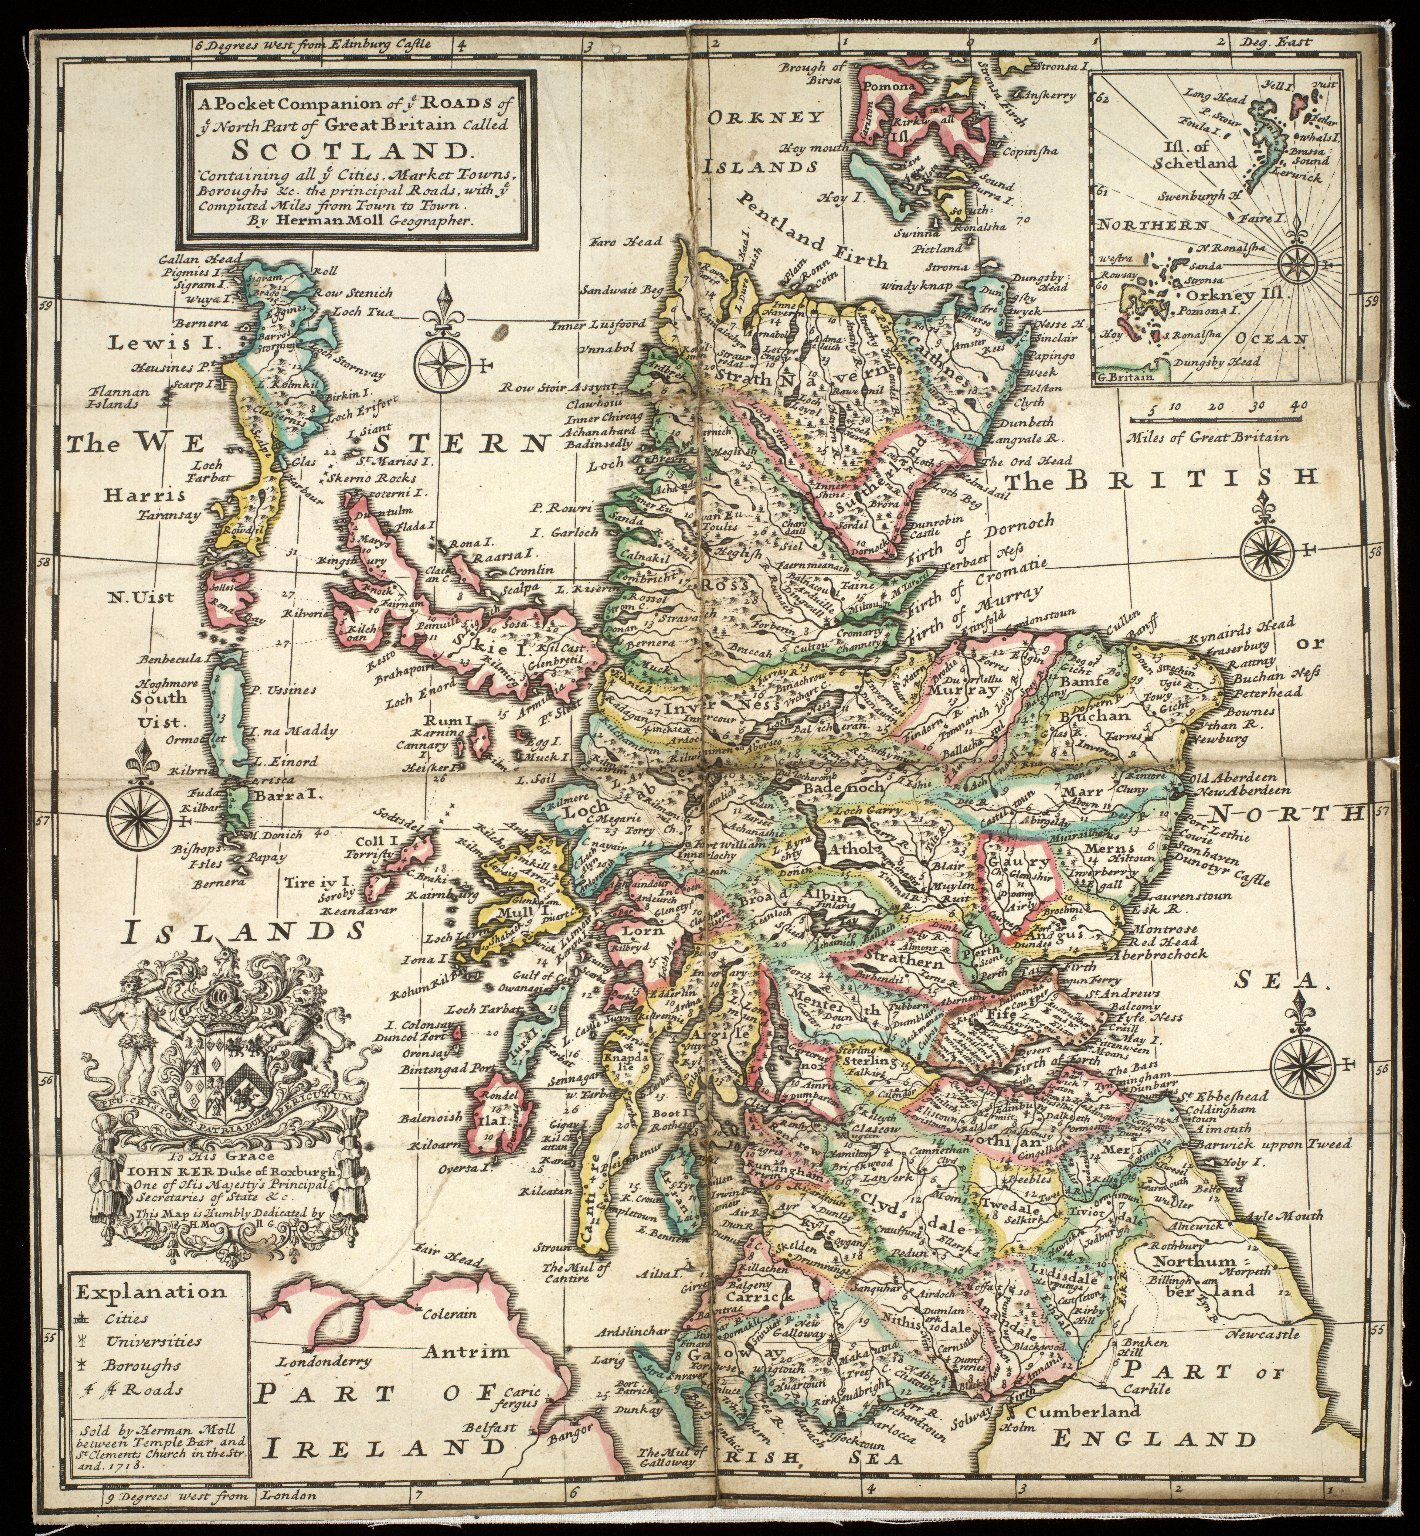 A Pocket Companion of ye Roads of ye North Part of Great Britain called Scotland : Containing all ye Cities, Market Towns, Boroughs &c., the principal Roads, with ye Computed Miles from Town to Town / By Herman Moll. [1 of 1]